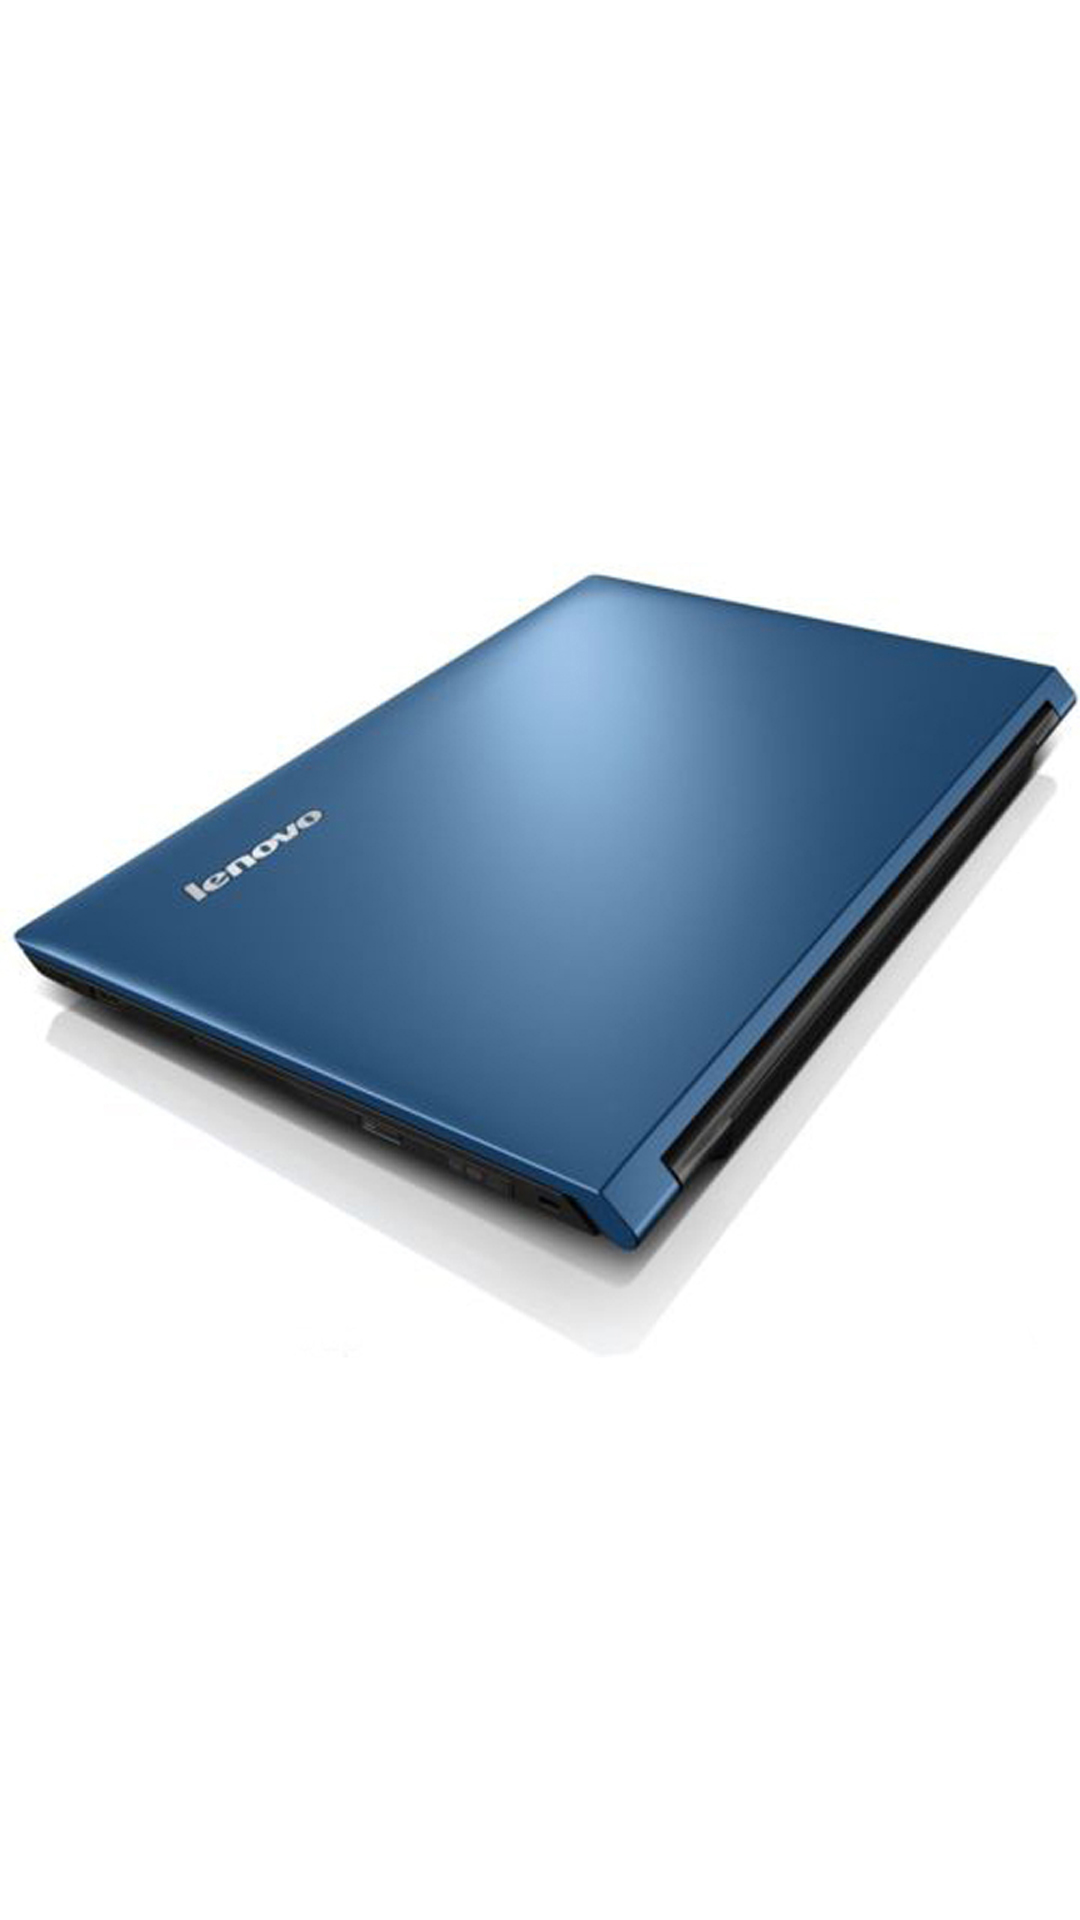 Lenovo Ideapad 305 (Core i5 (5th Gen)/4 GB/1 TB/39.62 cm (15.6)/Windows 10/2 GB) (Blue)